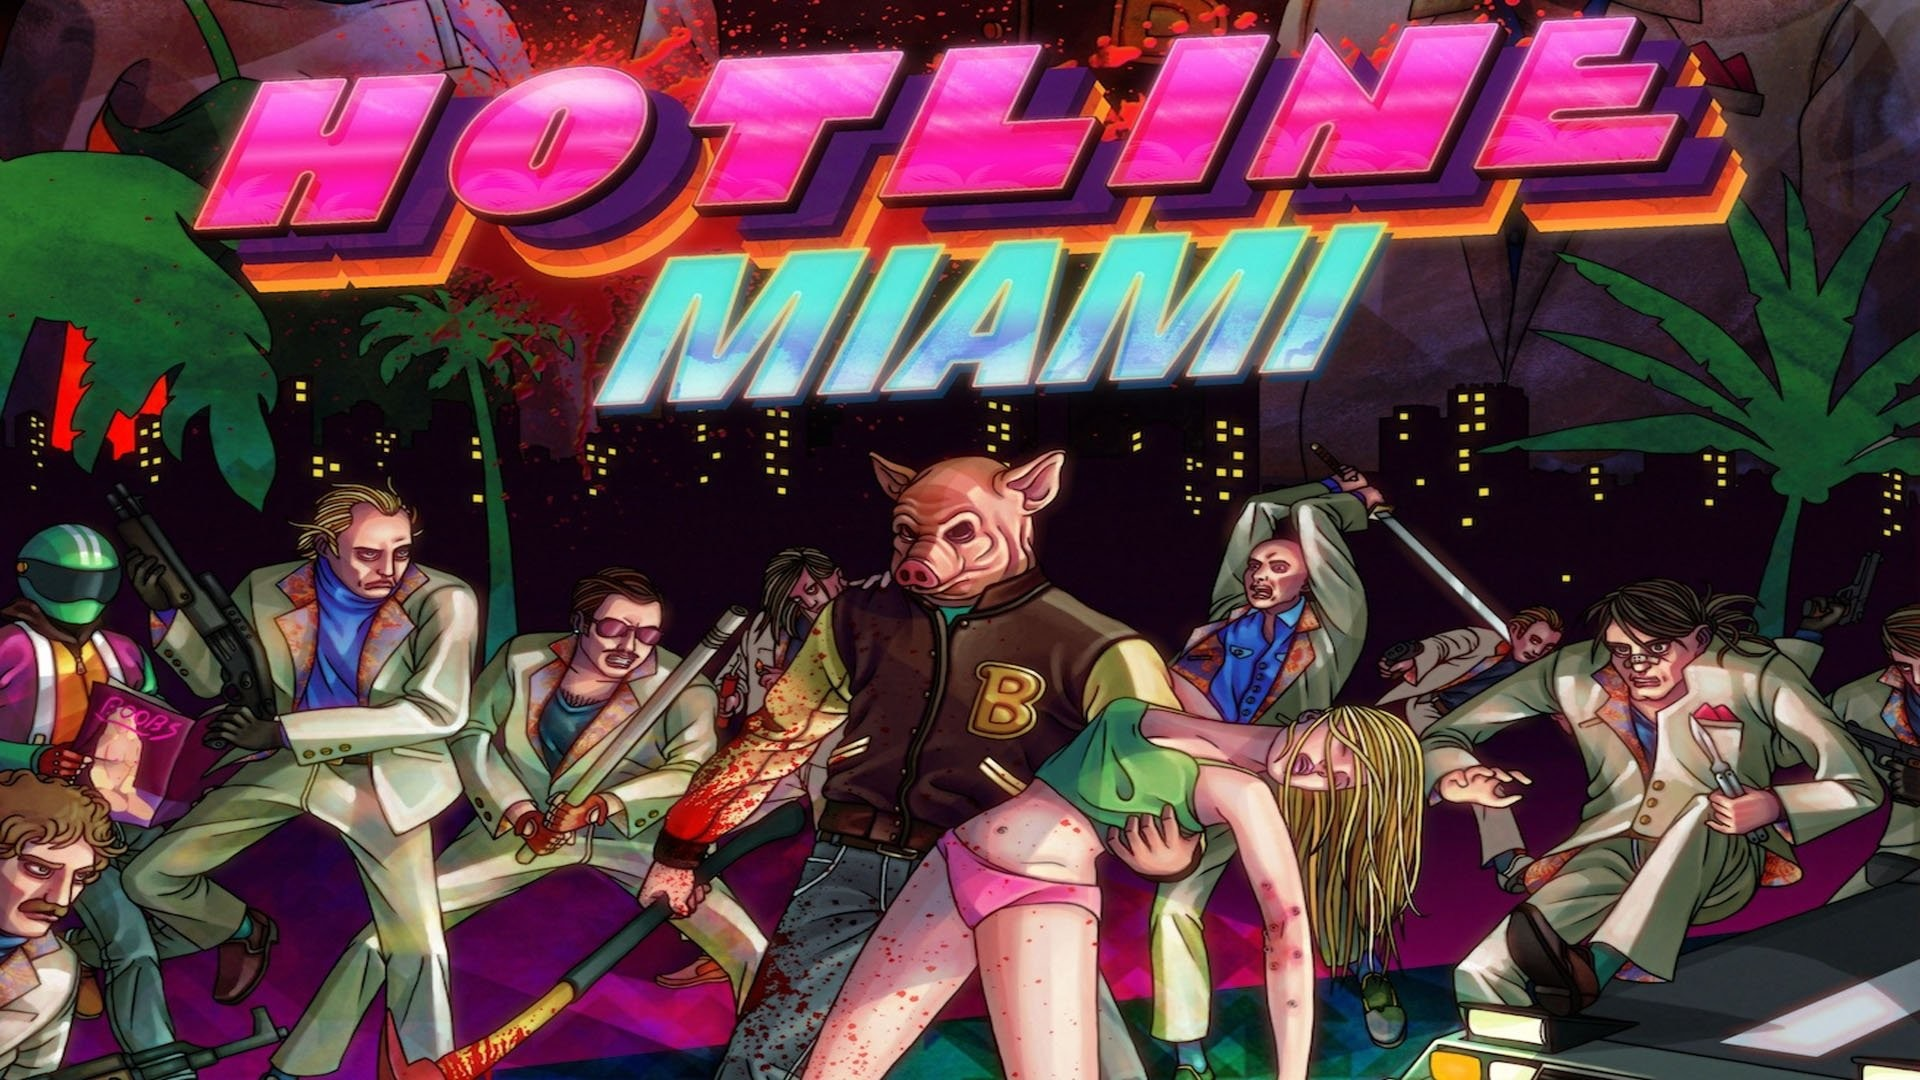 HOTLINE-MIAMI action shooter fighting hotline miami payday wallpaper |  | 547976 | WallpaperUP